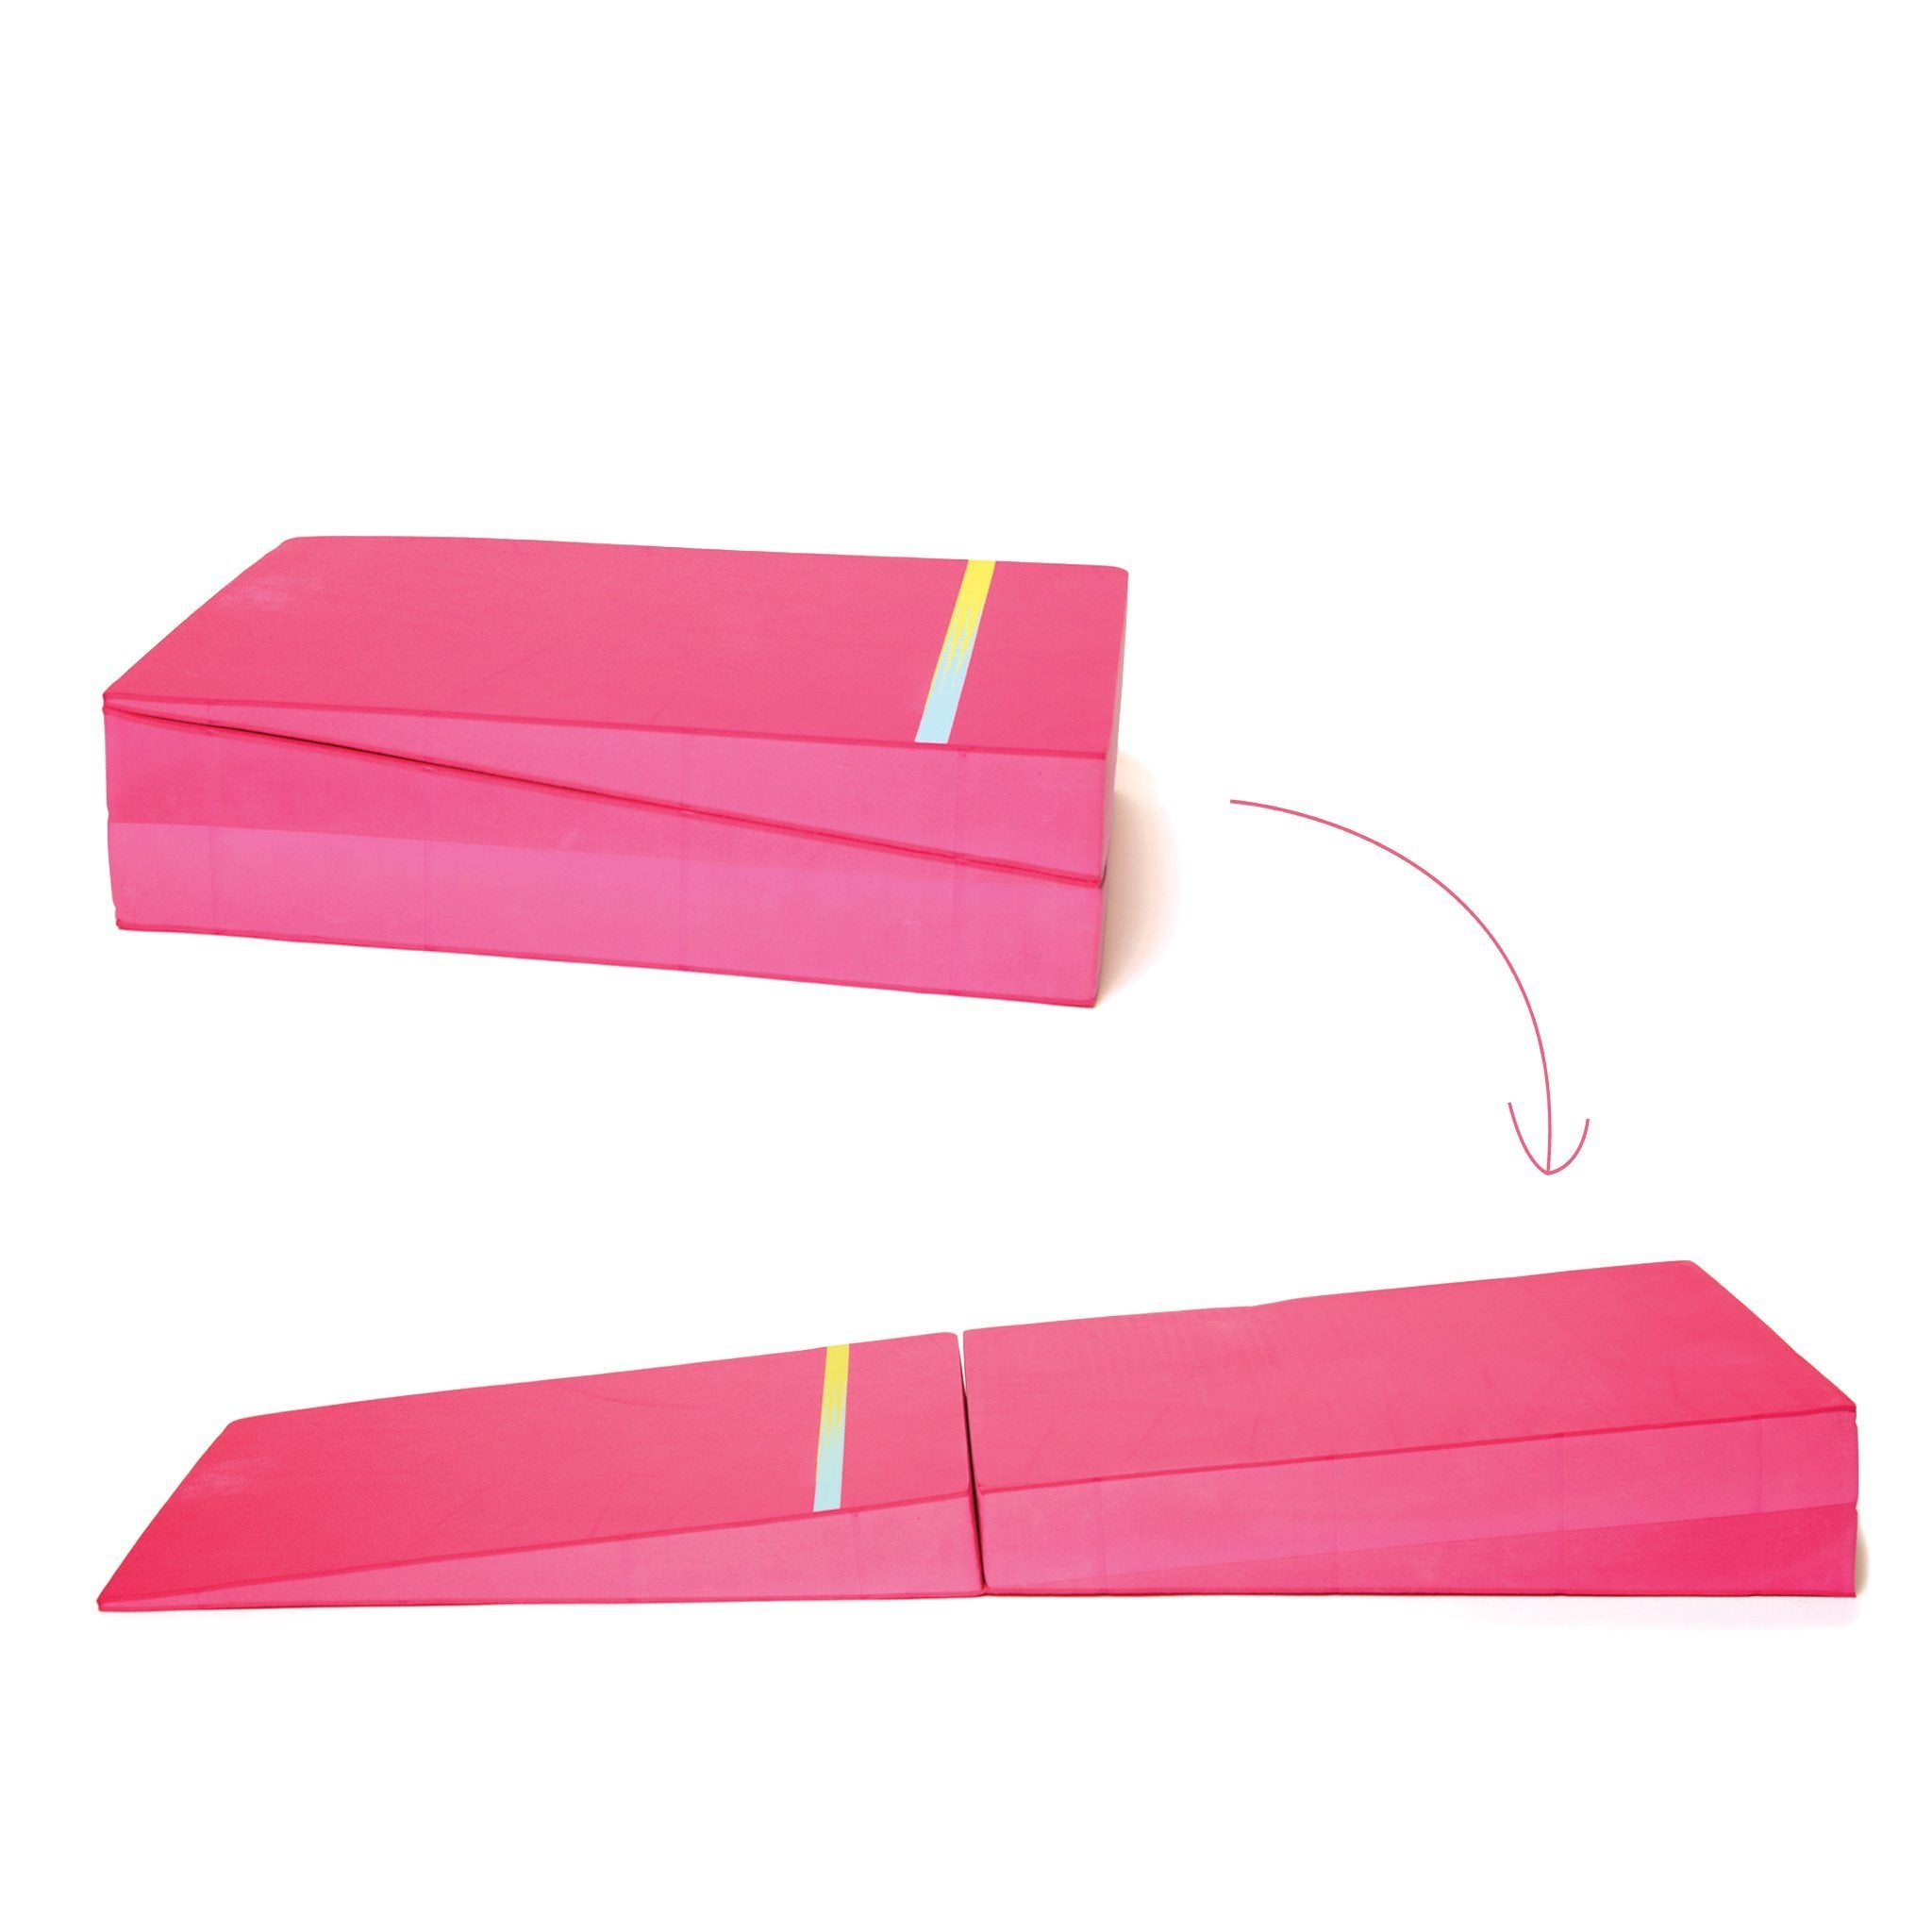 Maplelea Gymnastics Set for dolls shows fold out cheese mat in two positions.